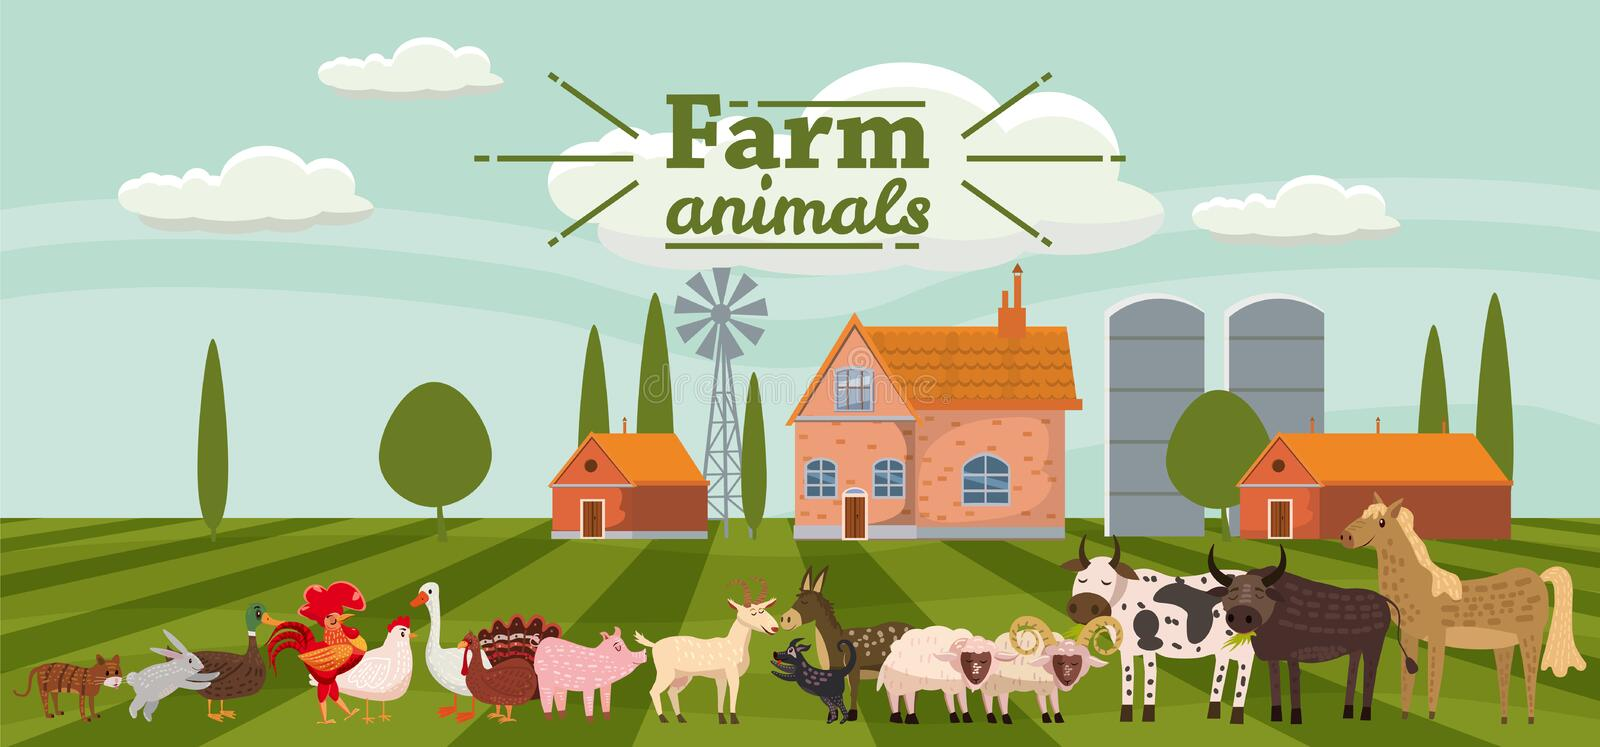 Farm animals and birds set in trendy cute style, including horse, cow, donkey, sheep, goat, pig, rabbit, duck, goose royalty free illustration